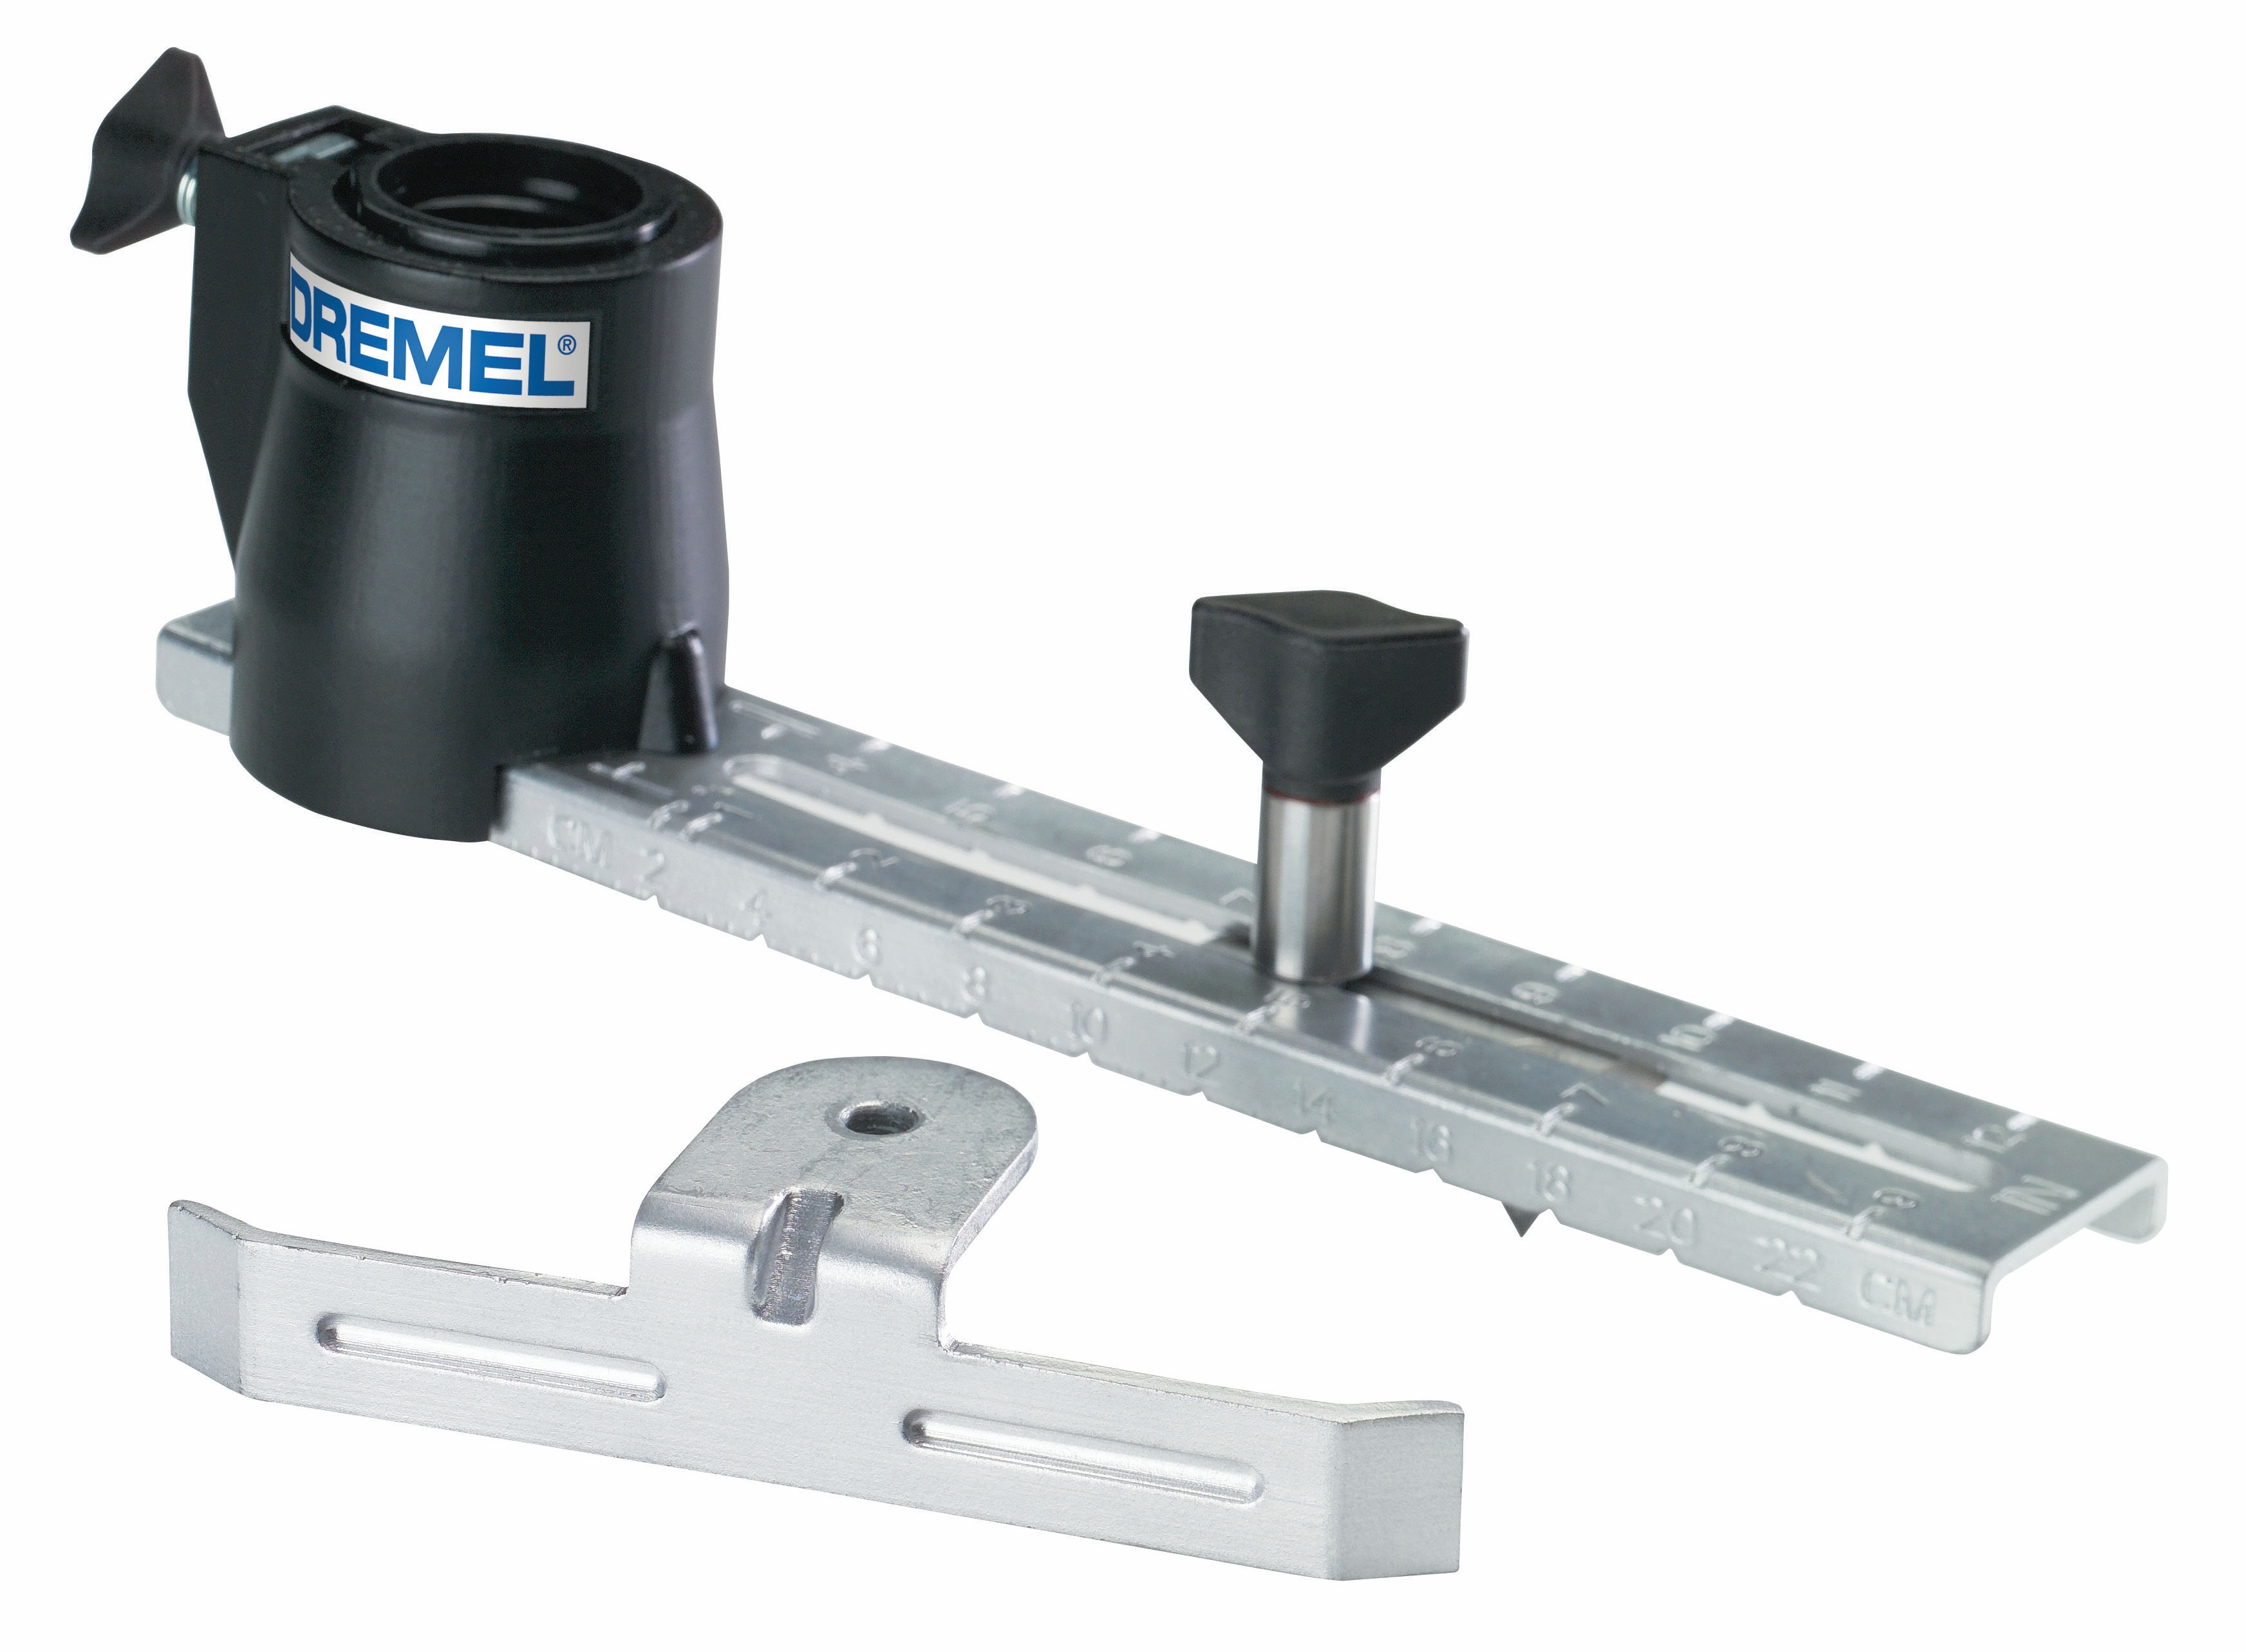 Dremel 678-01 Circle Cutter & Straight Edge Guide by Robert Bosch Tool Corporation